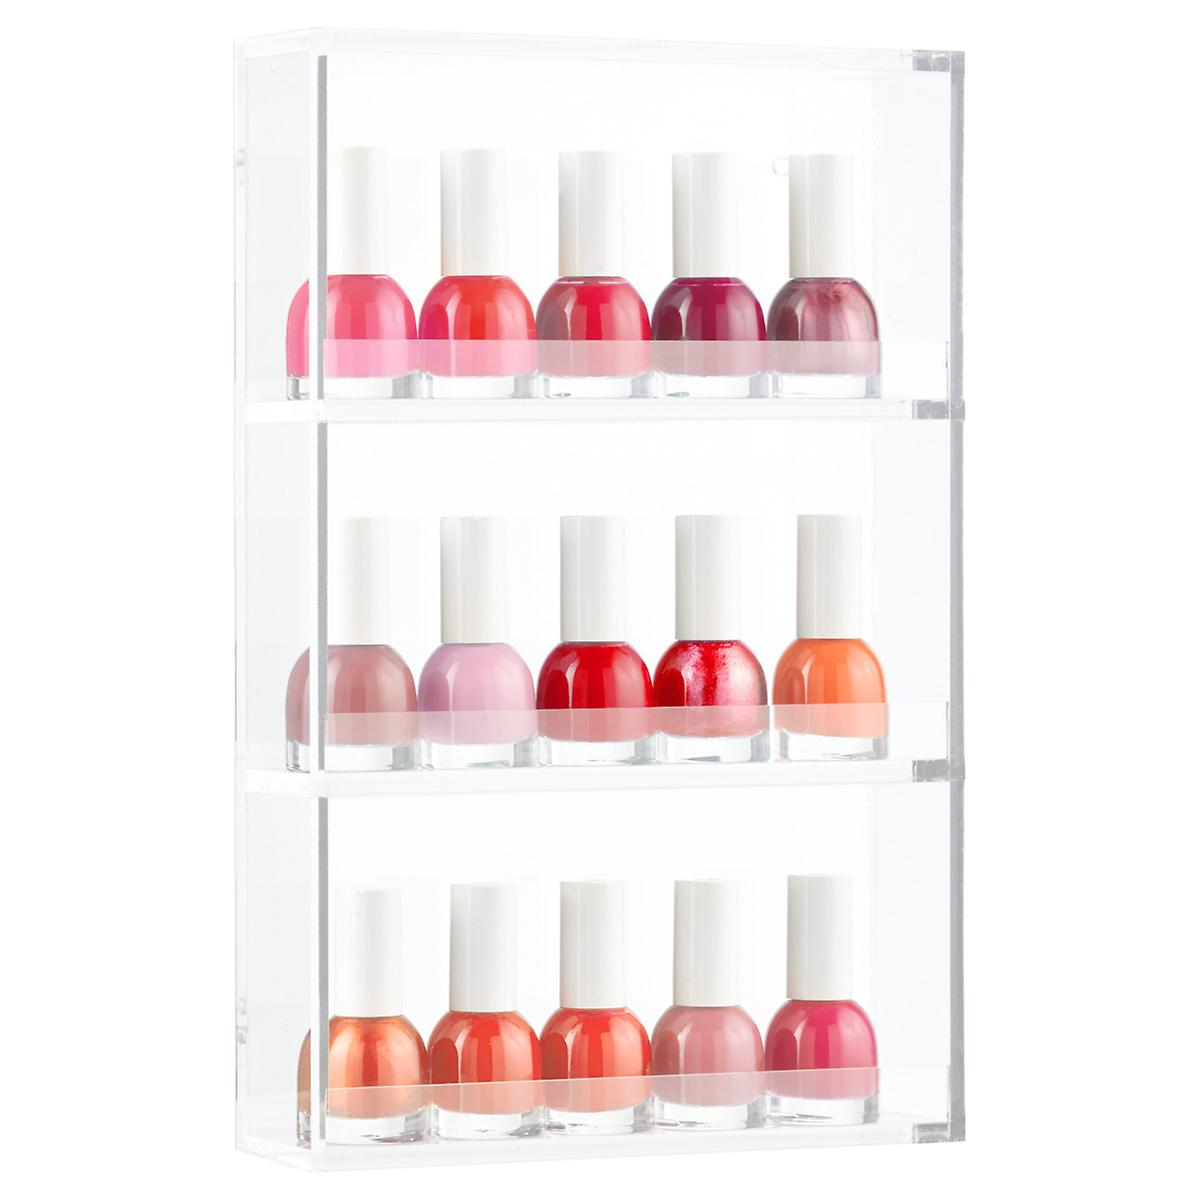 Nail Polish Rack - 3-Tier Acrylic Nail Polish Rack